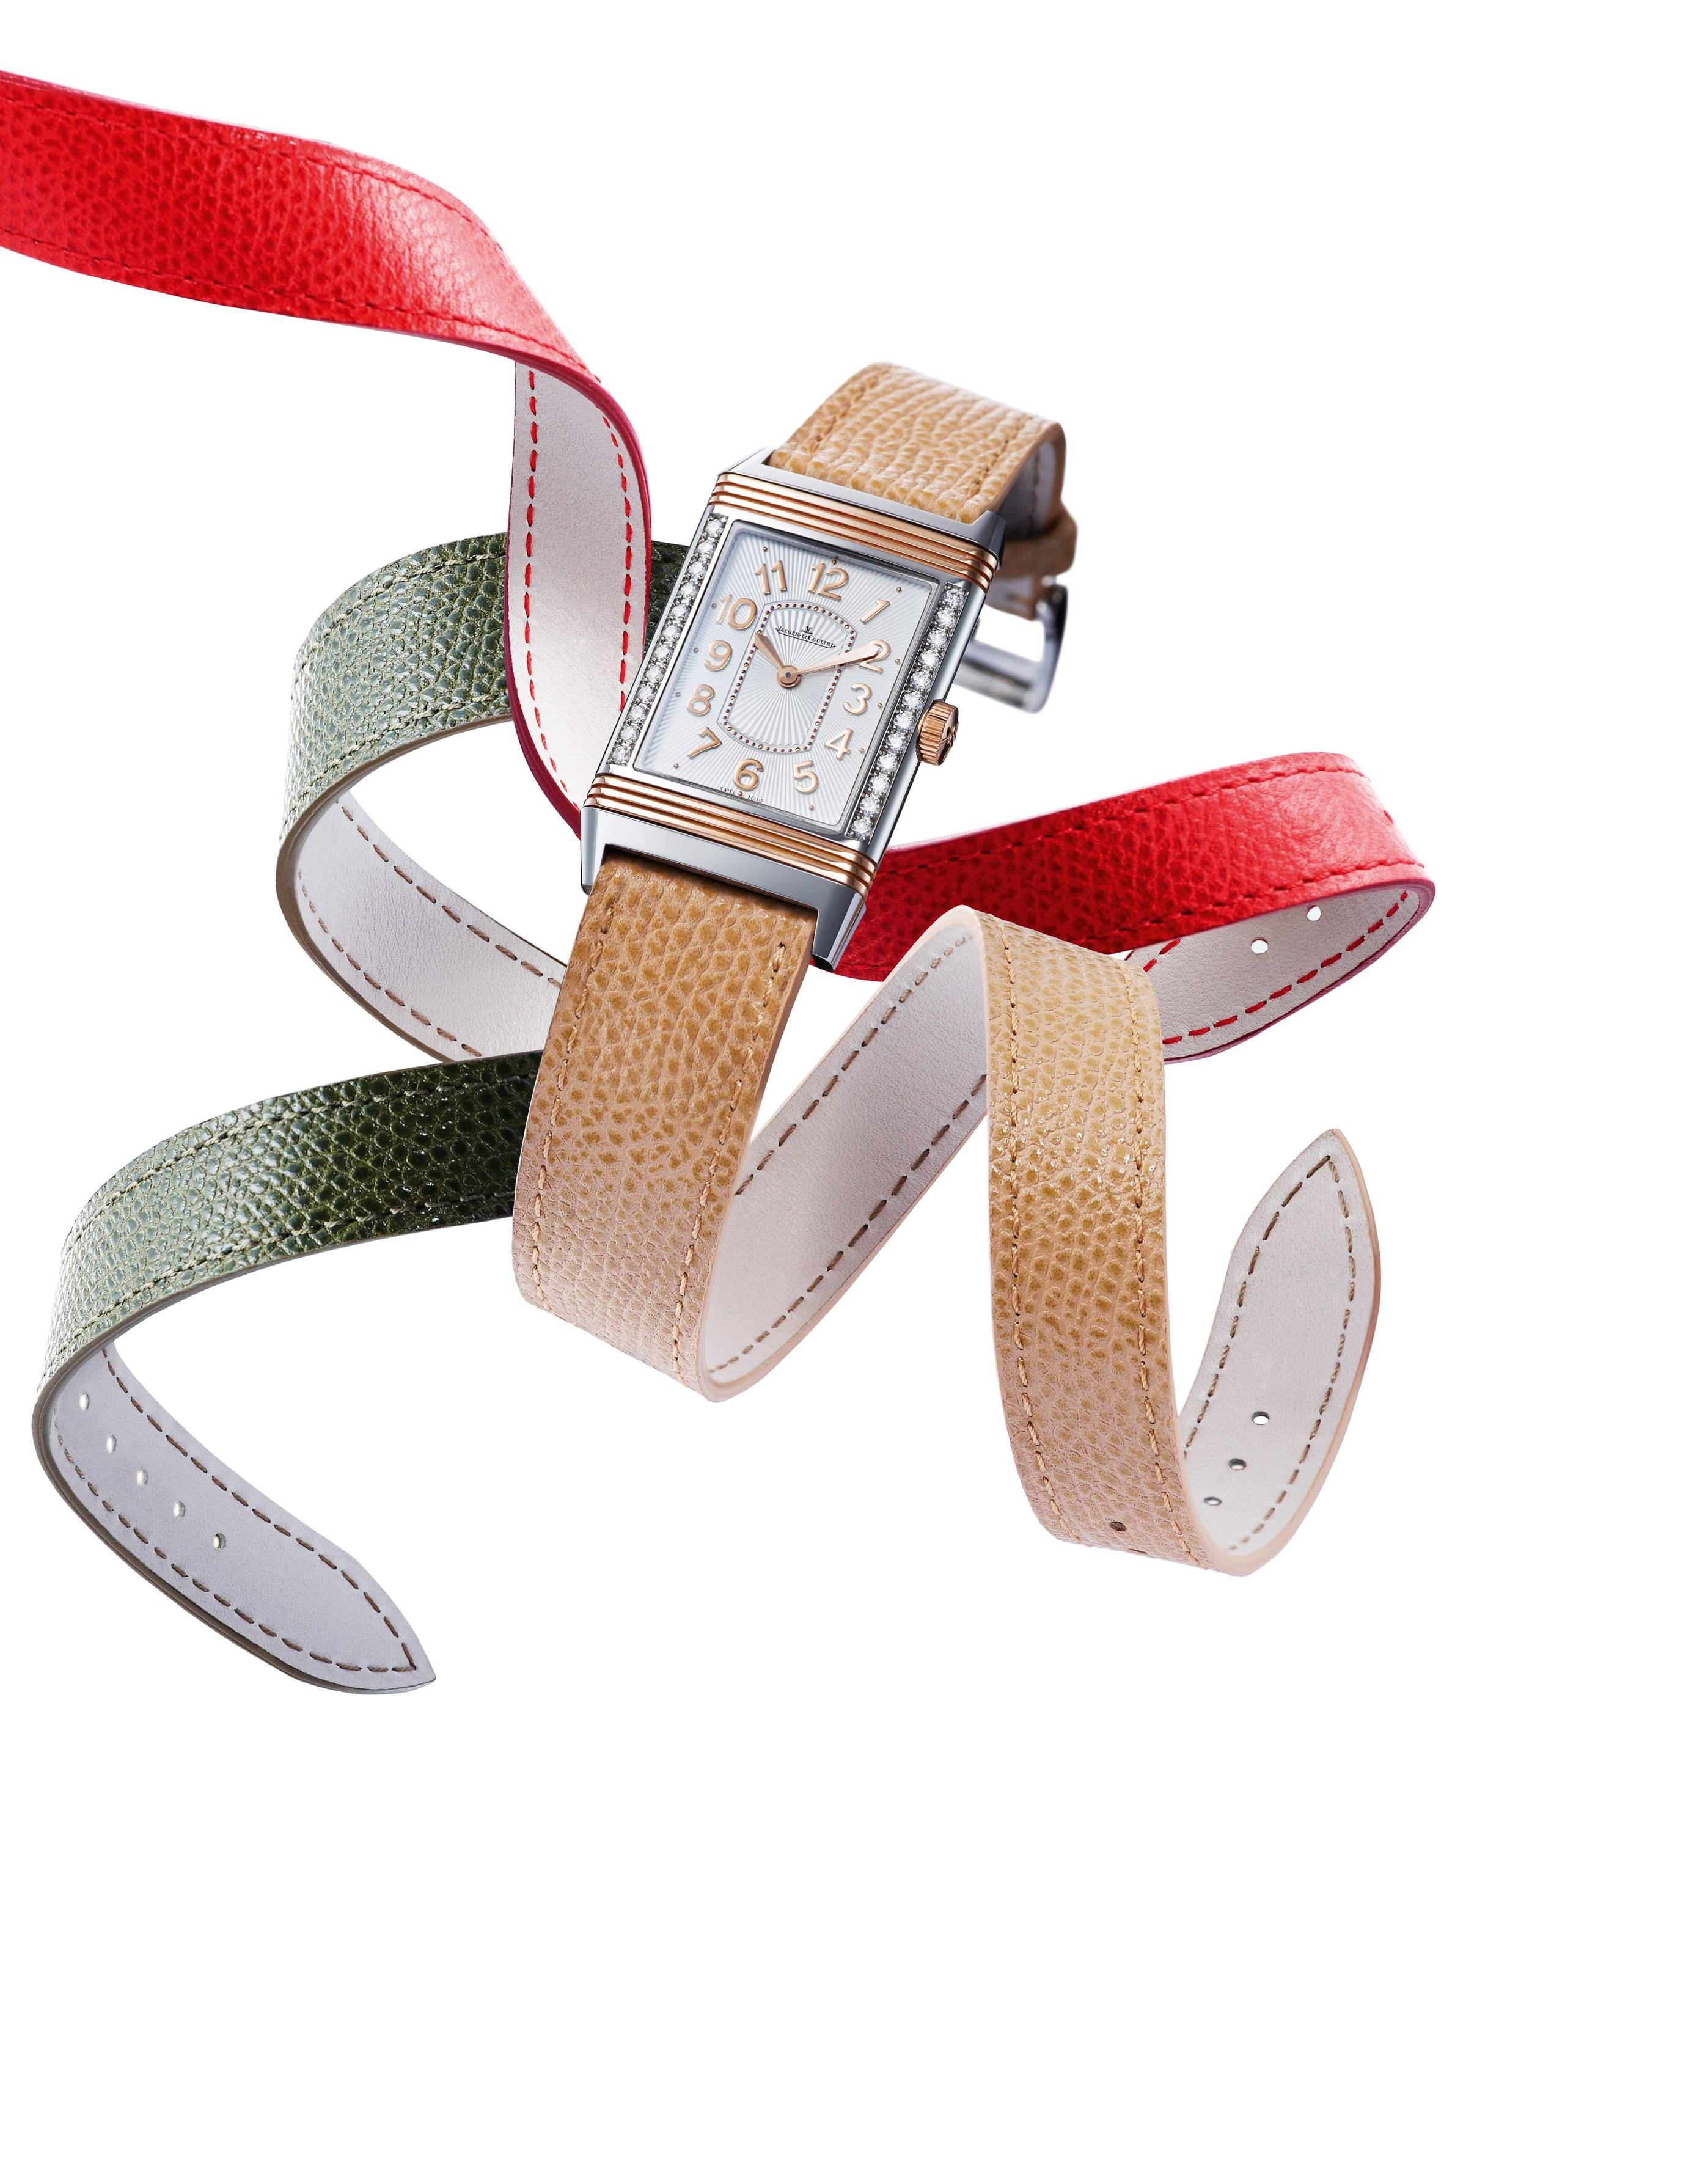 Jaeger-LeCoultre Unveil Limited-Edition Grande Reverso Lady Utra Thin for Valentine's Day